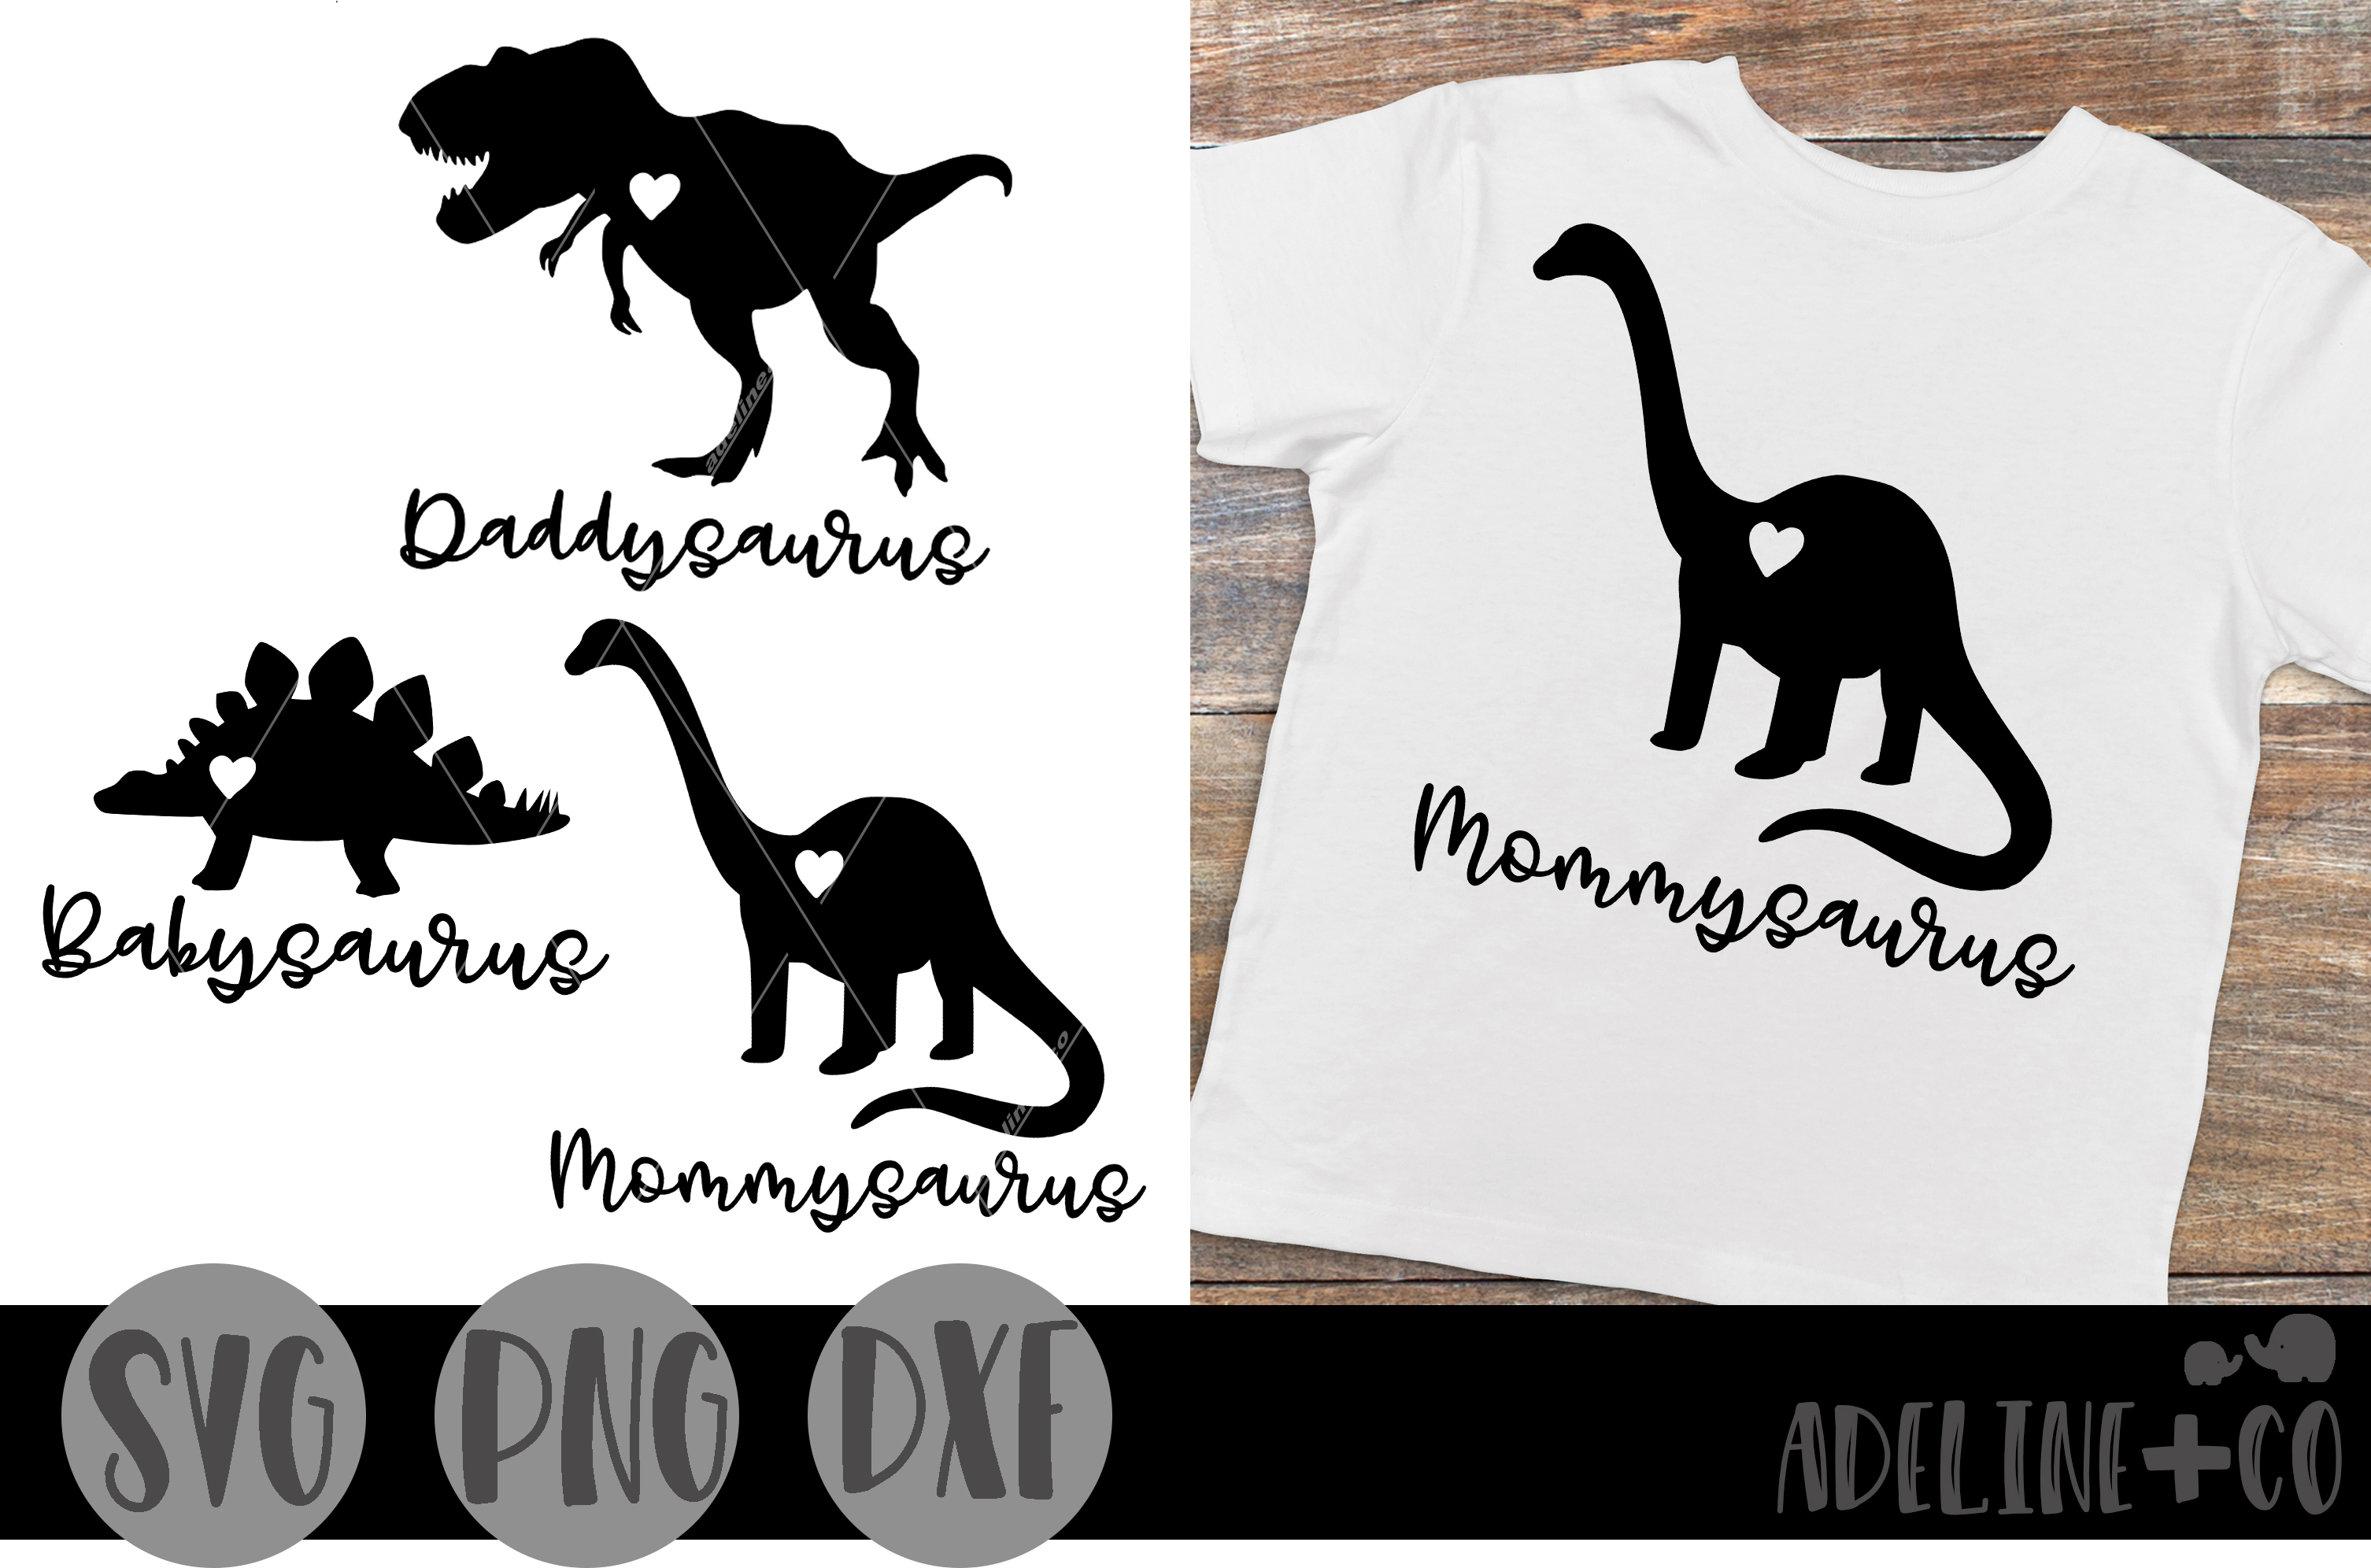 Download Free Mommysaurus Daddysaurus Babysaurus Graphic By Adelinenco for Cricut Explore, Silhouette and other cutting machines.